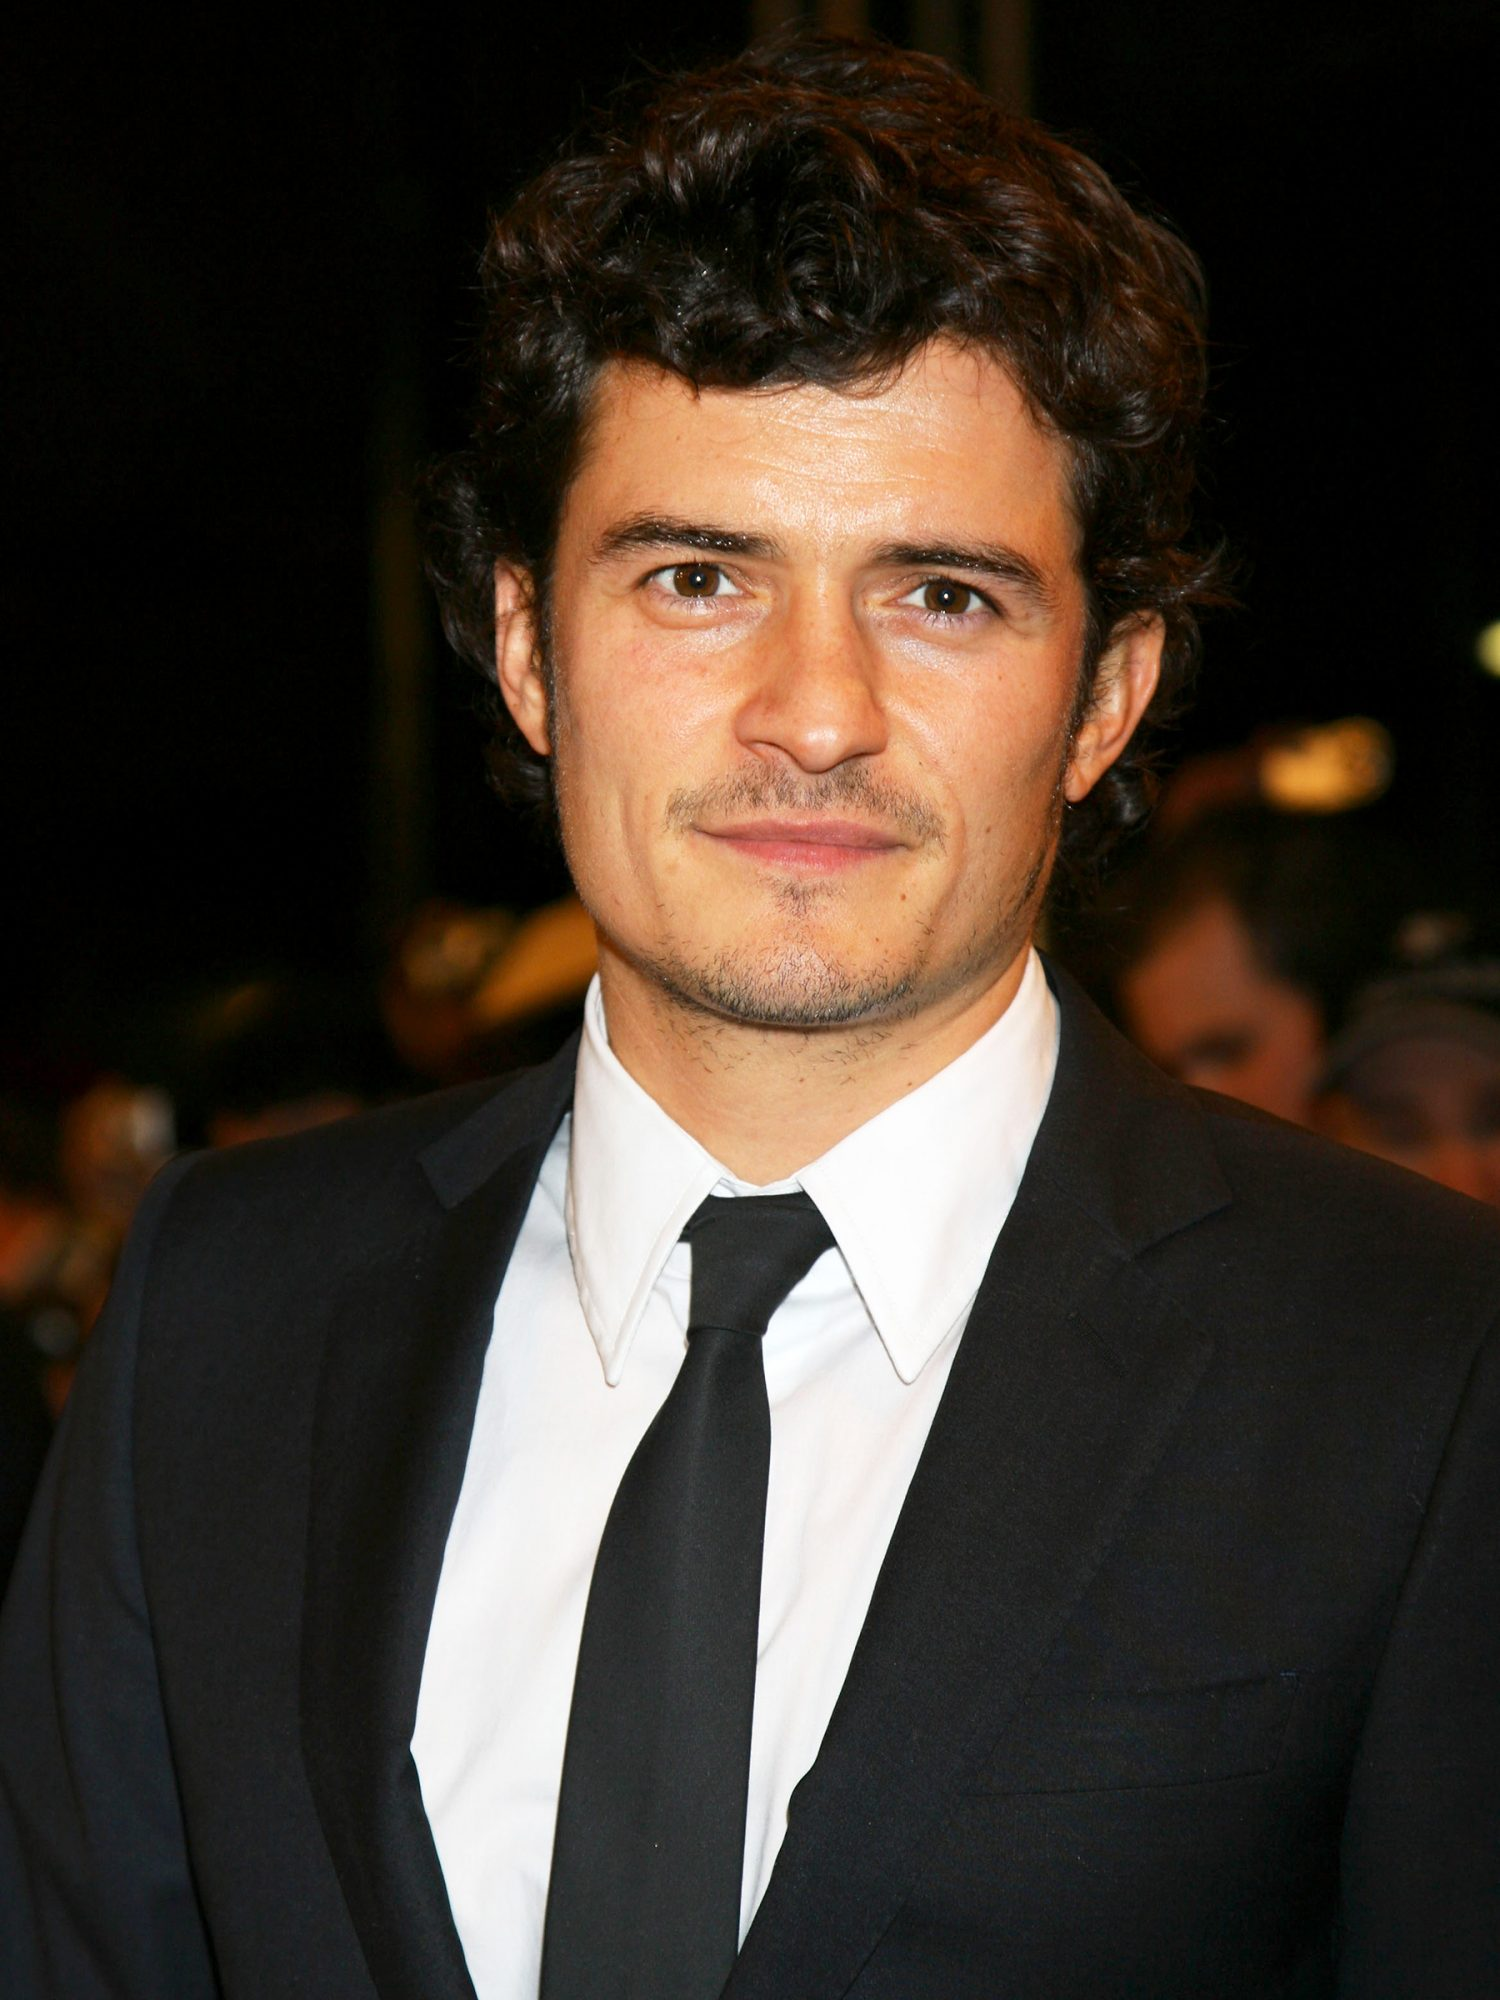 The Orange British Academy Film Awards 2008 - Red Carpet Arrivals